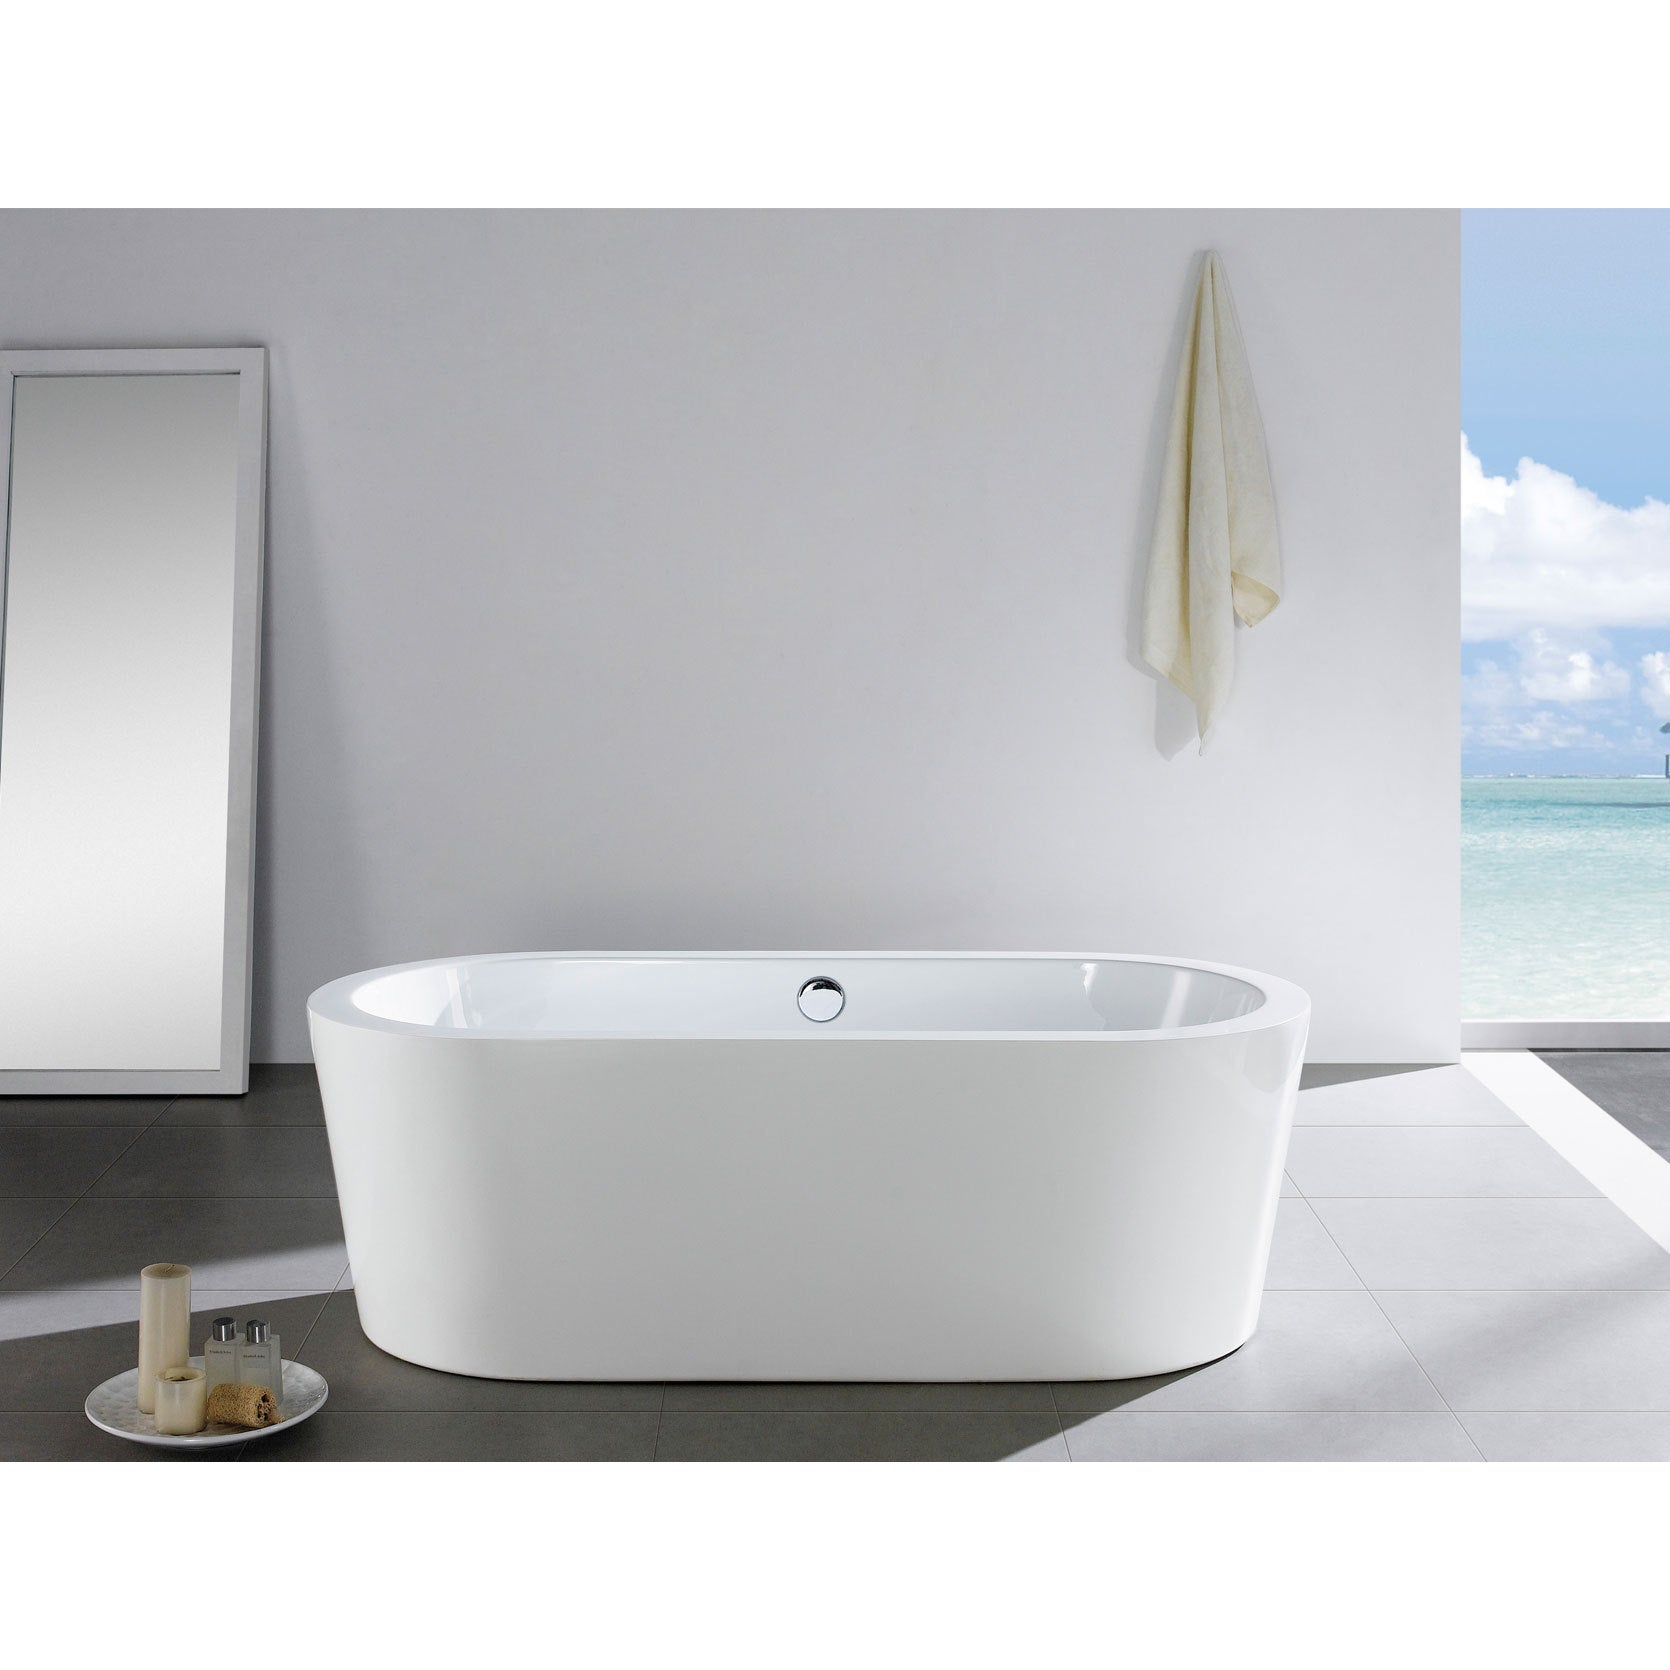 bathtub unusual tub shower designs mulit com suggestion inch lapoup bathroom the ideas best function with combo